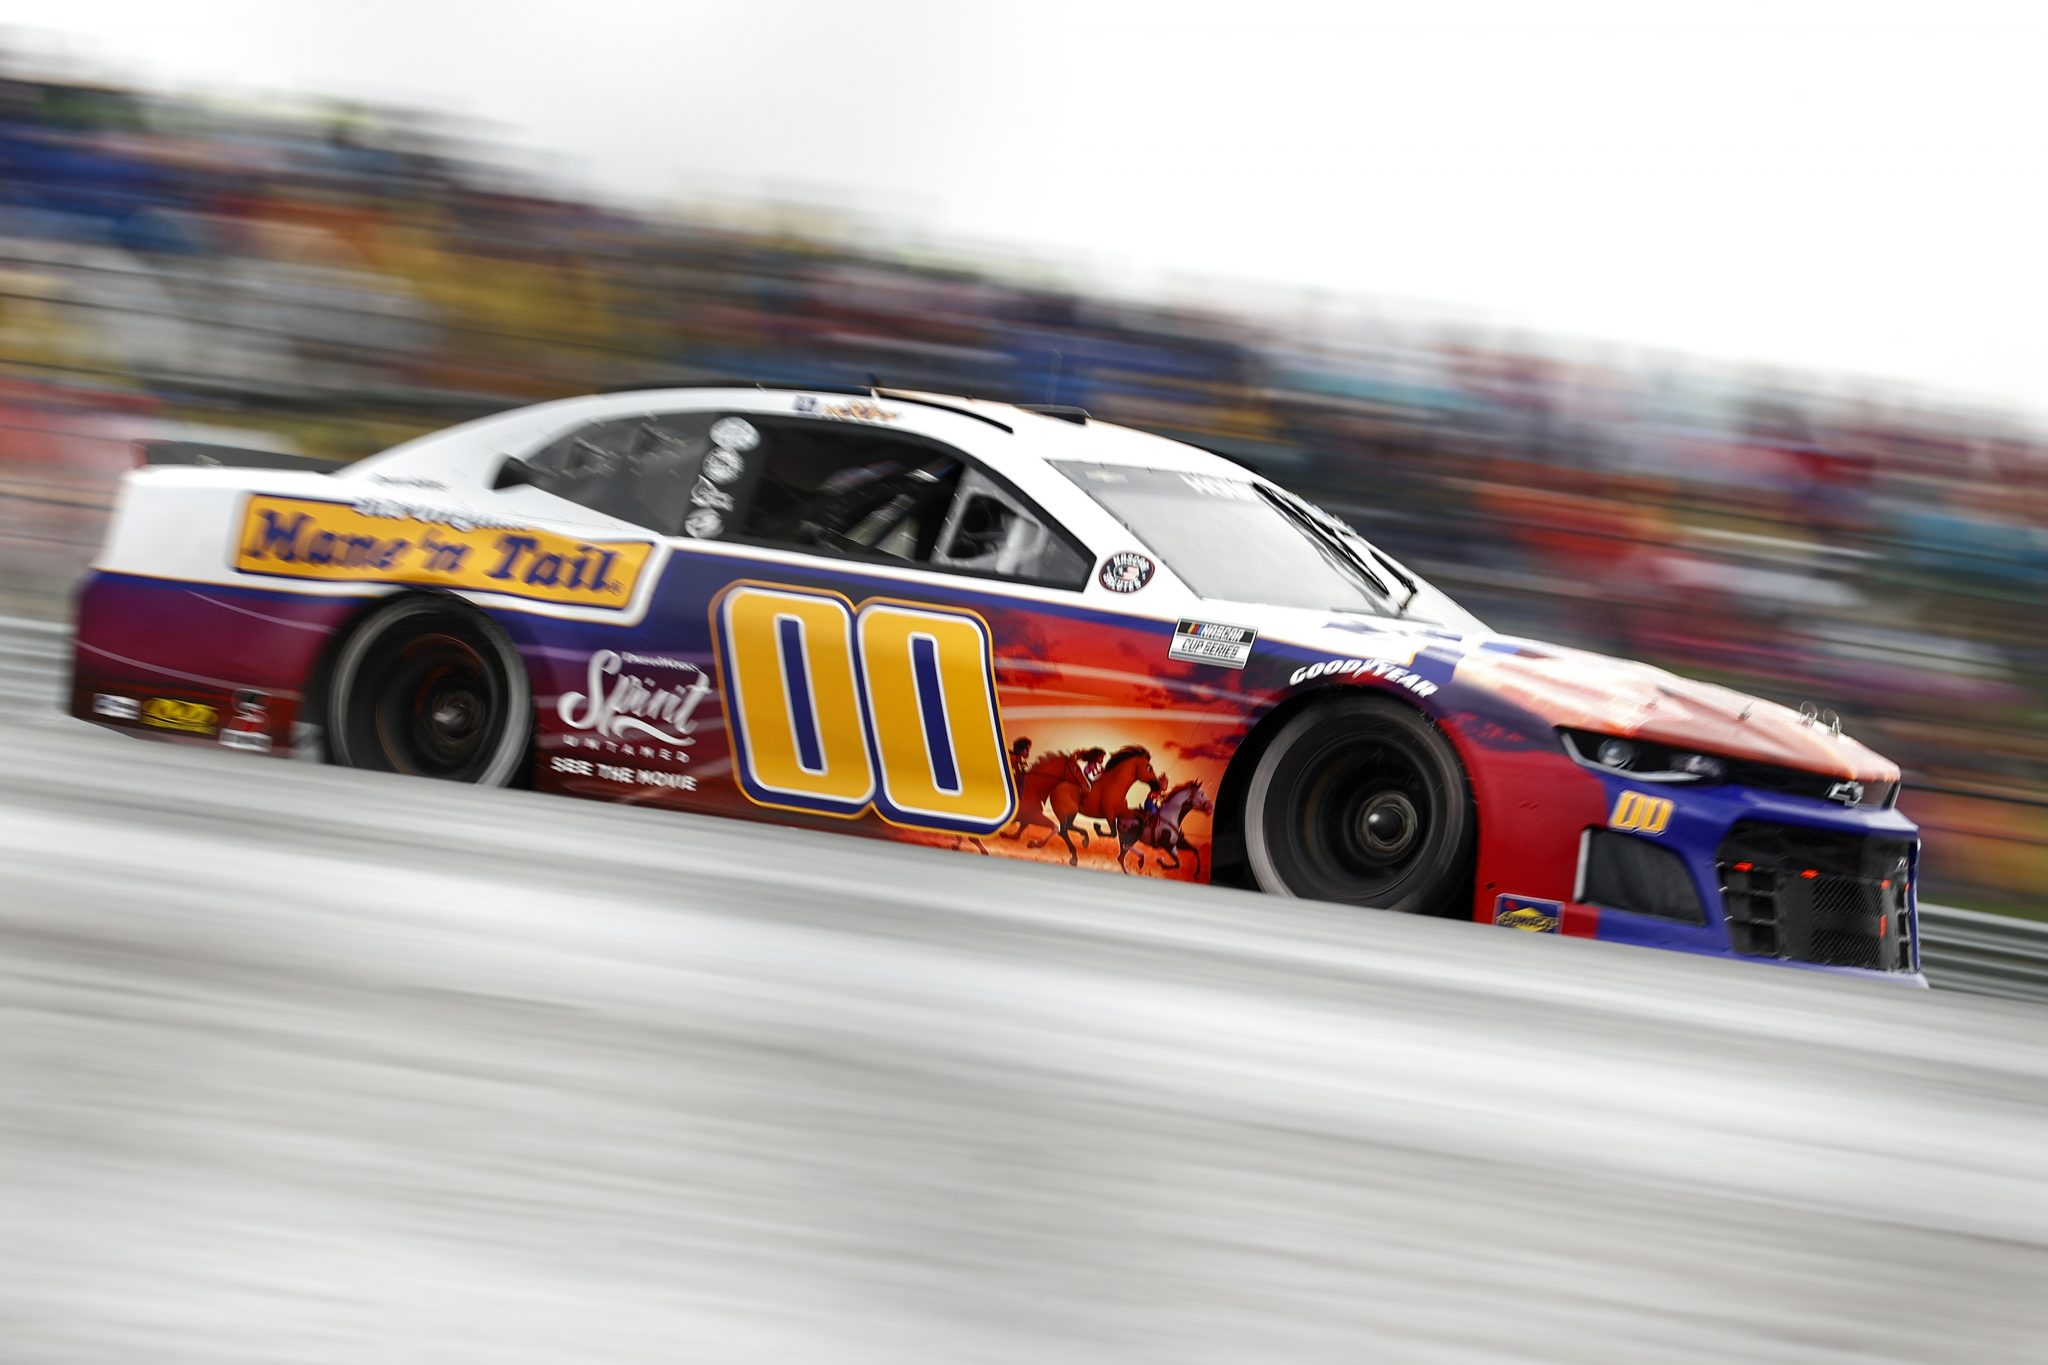 AUSTIN, TEXAS - MAY 23: Quin Houff, driver of the #00 Mane 'n Tail/Spirit Untamed Chevrolet, drives during the NASCAR Cup Series EchoPark Texas Grand Prix at Circuit of The Americas on May 23, 2021 in Austin, Texas. (Photo by Jared C. Tilton/Getty Images)   Getty Images